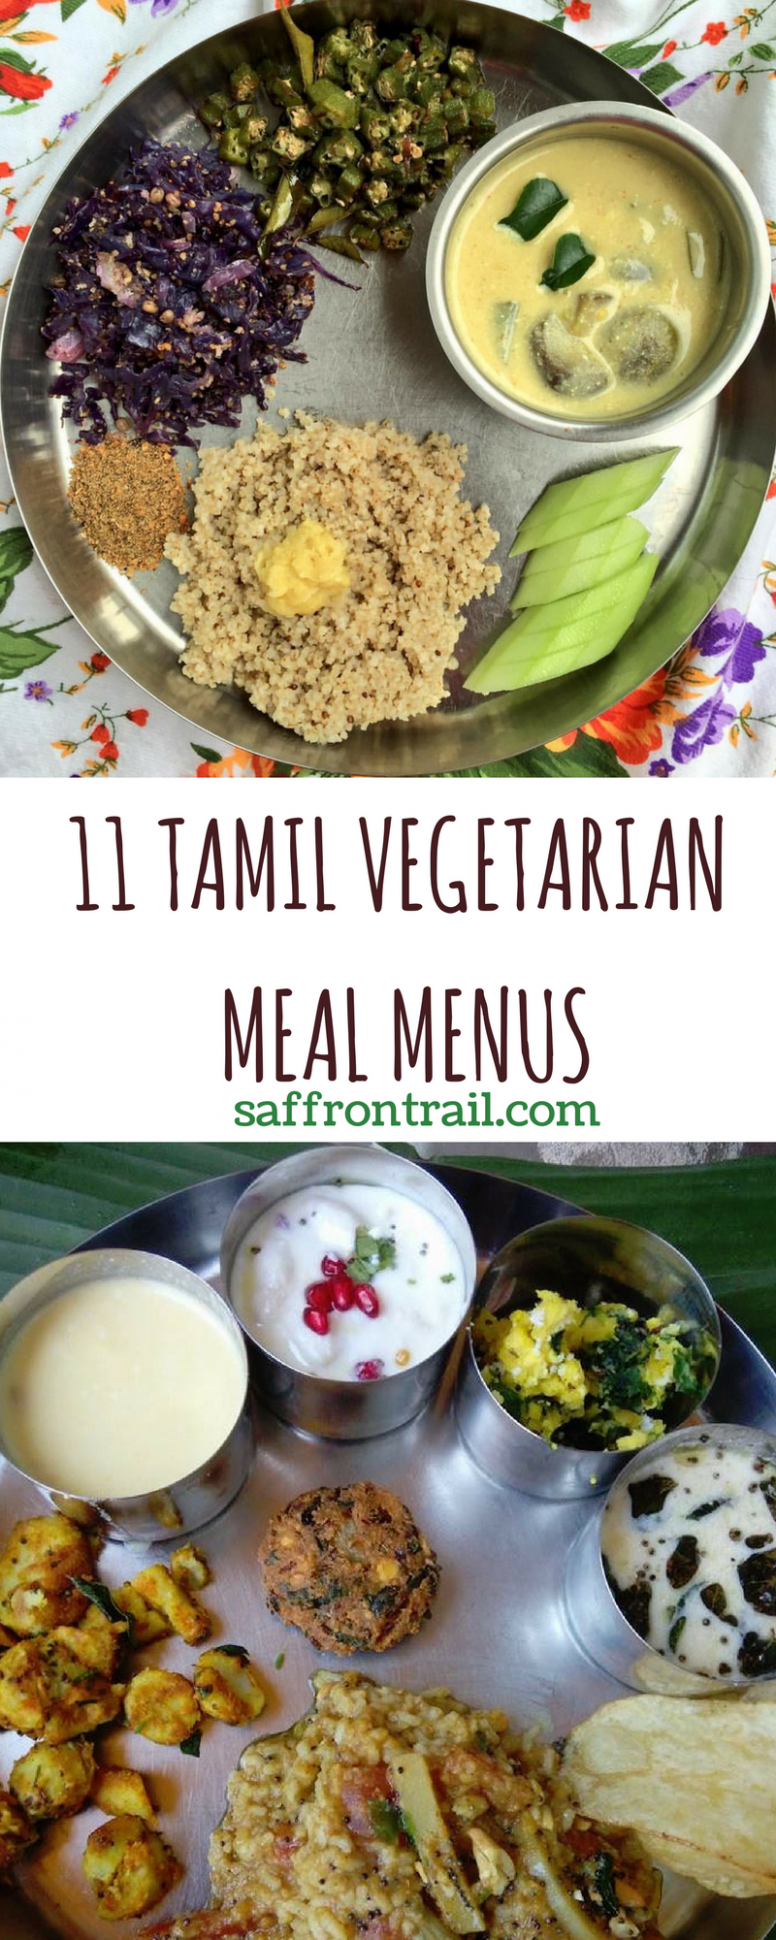 8 Traditional Tamil Vegetarian Lunch Menus | Indian food recipes ...